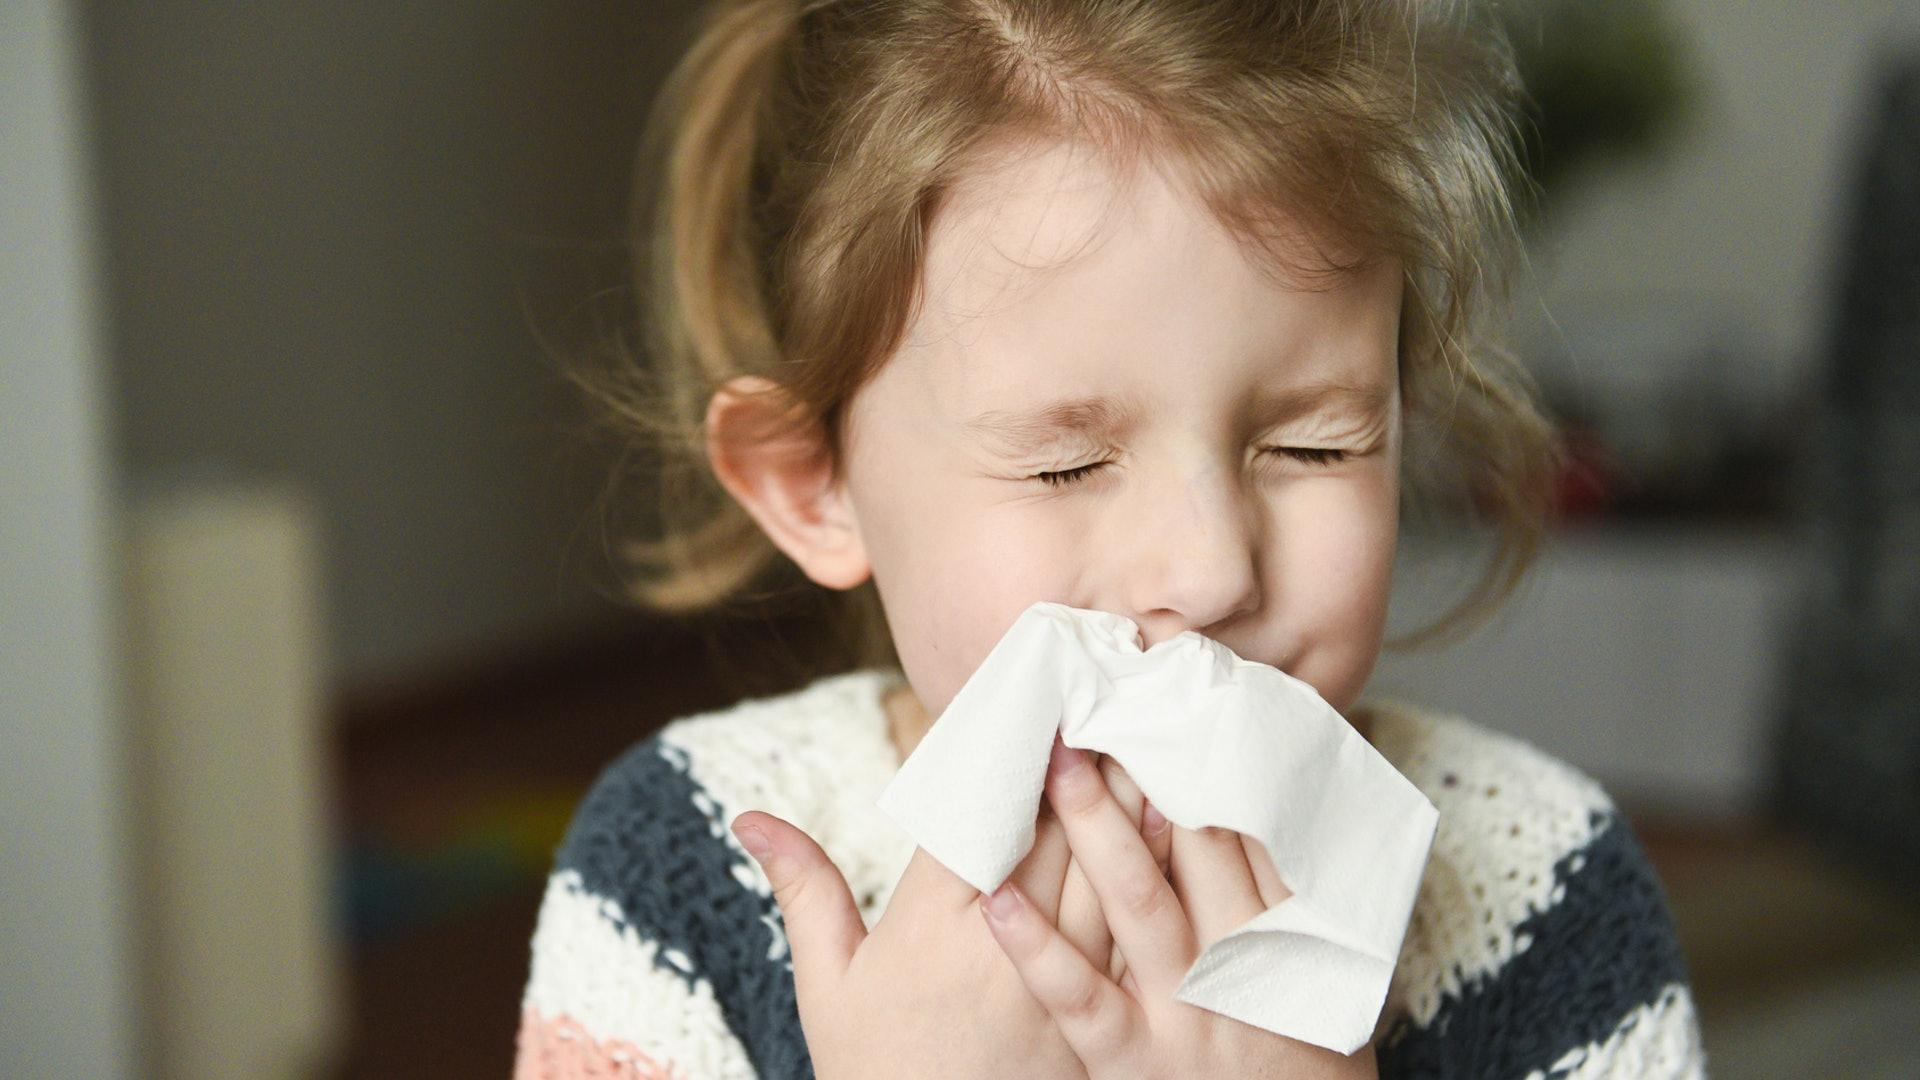 Child wiping nose because of pollen allergies